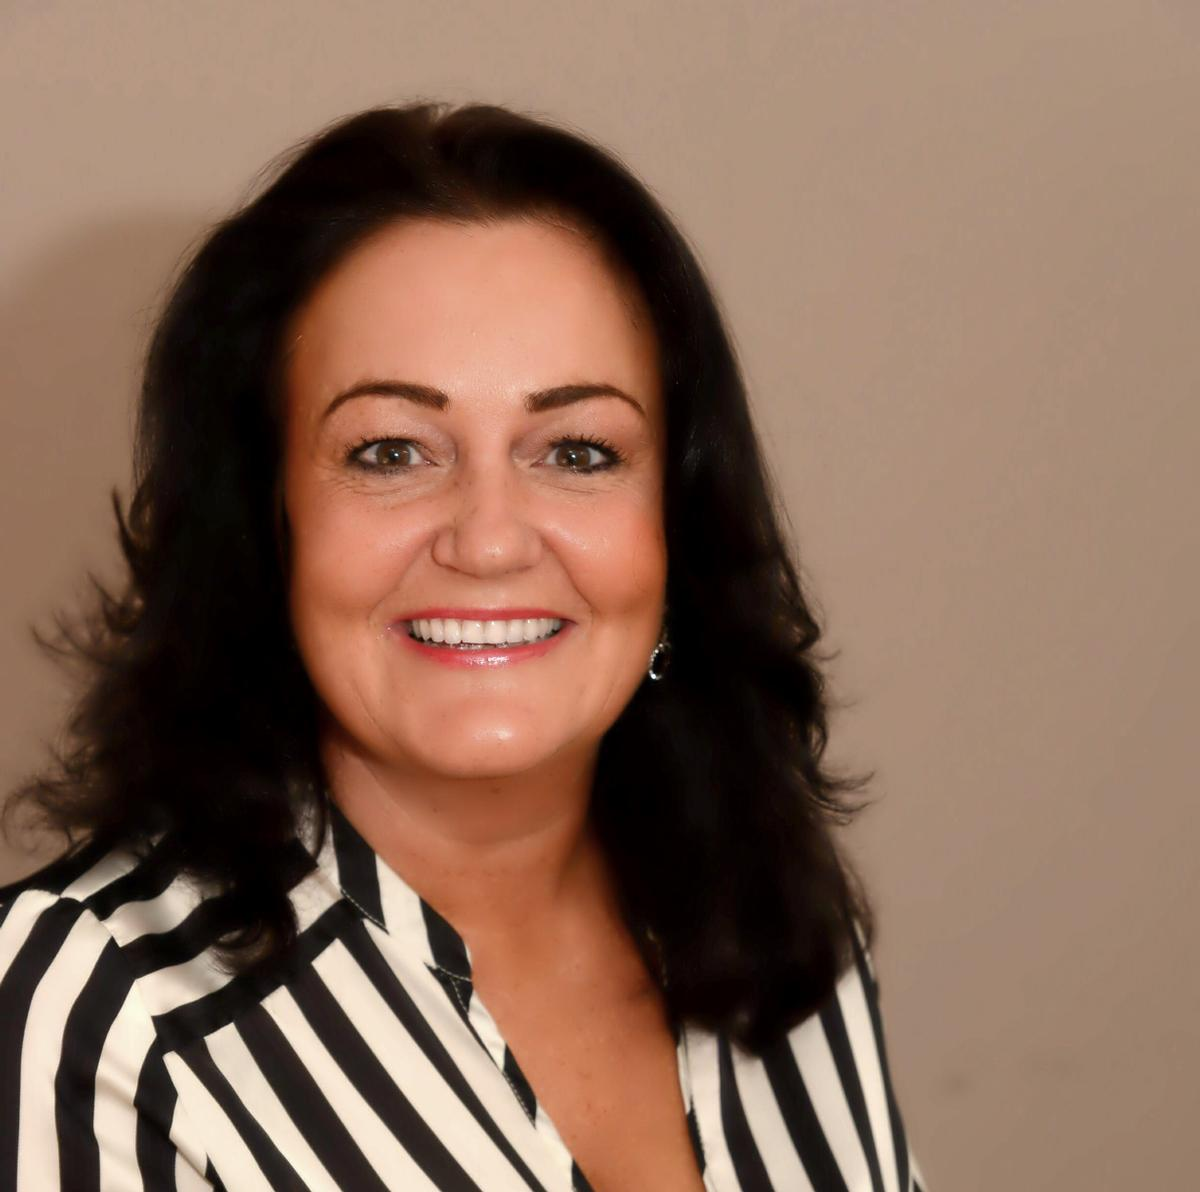 Alliance Leisure CEO Sarah Watts believes there's 'a real opportunity to seize the moment' and overhaul the current status quo